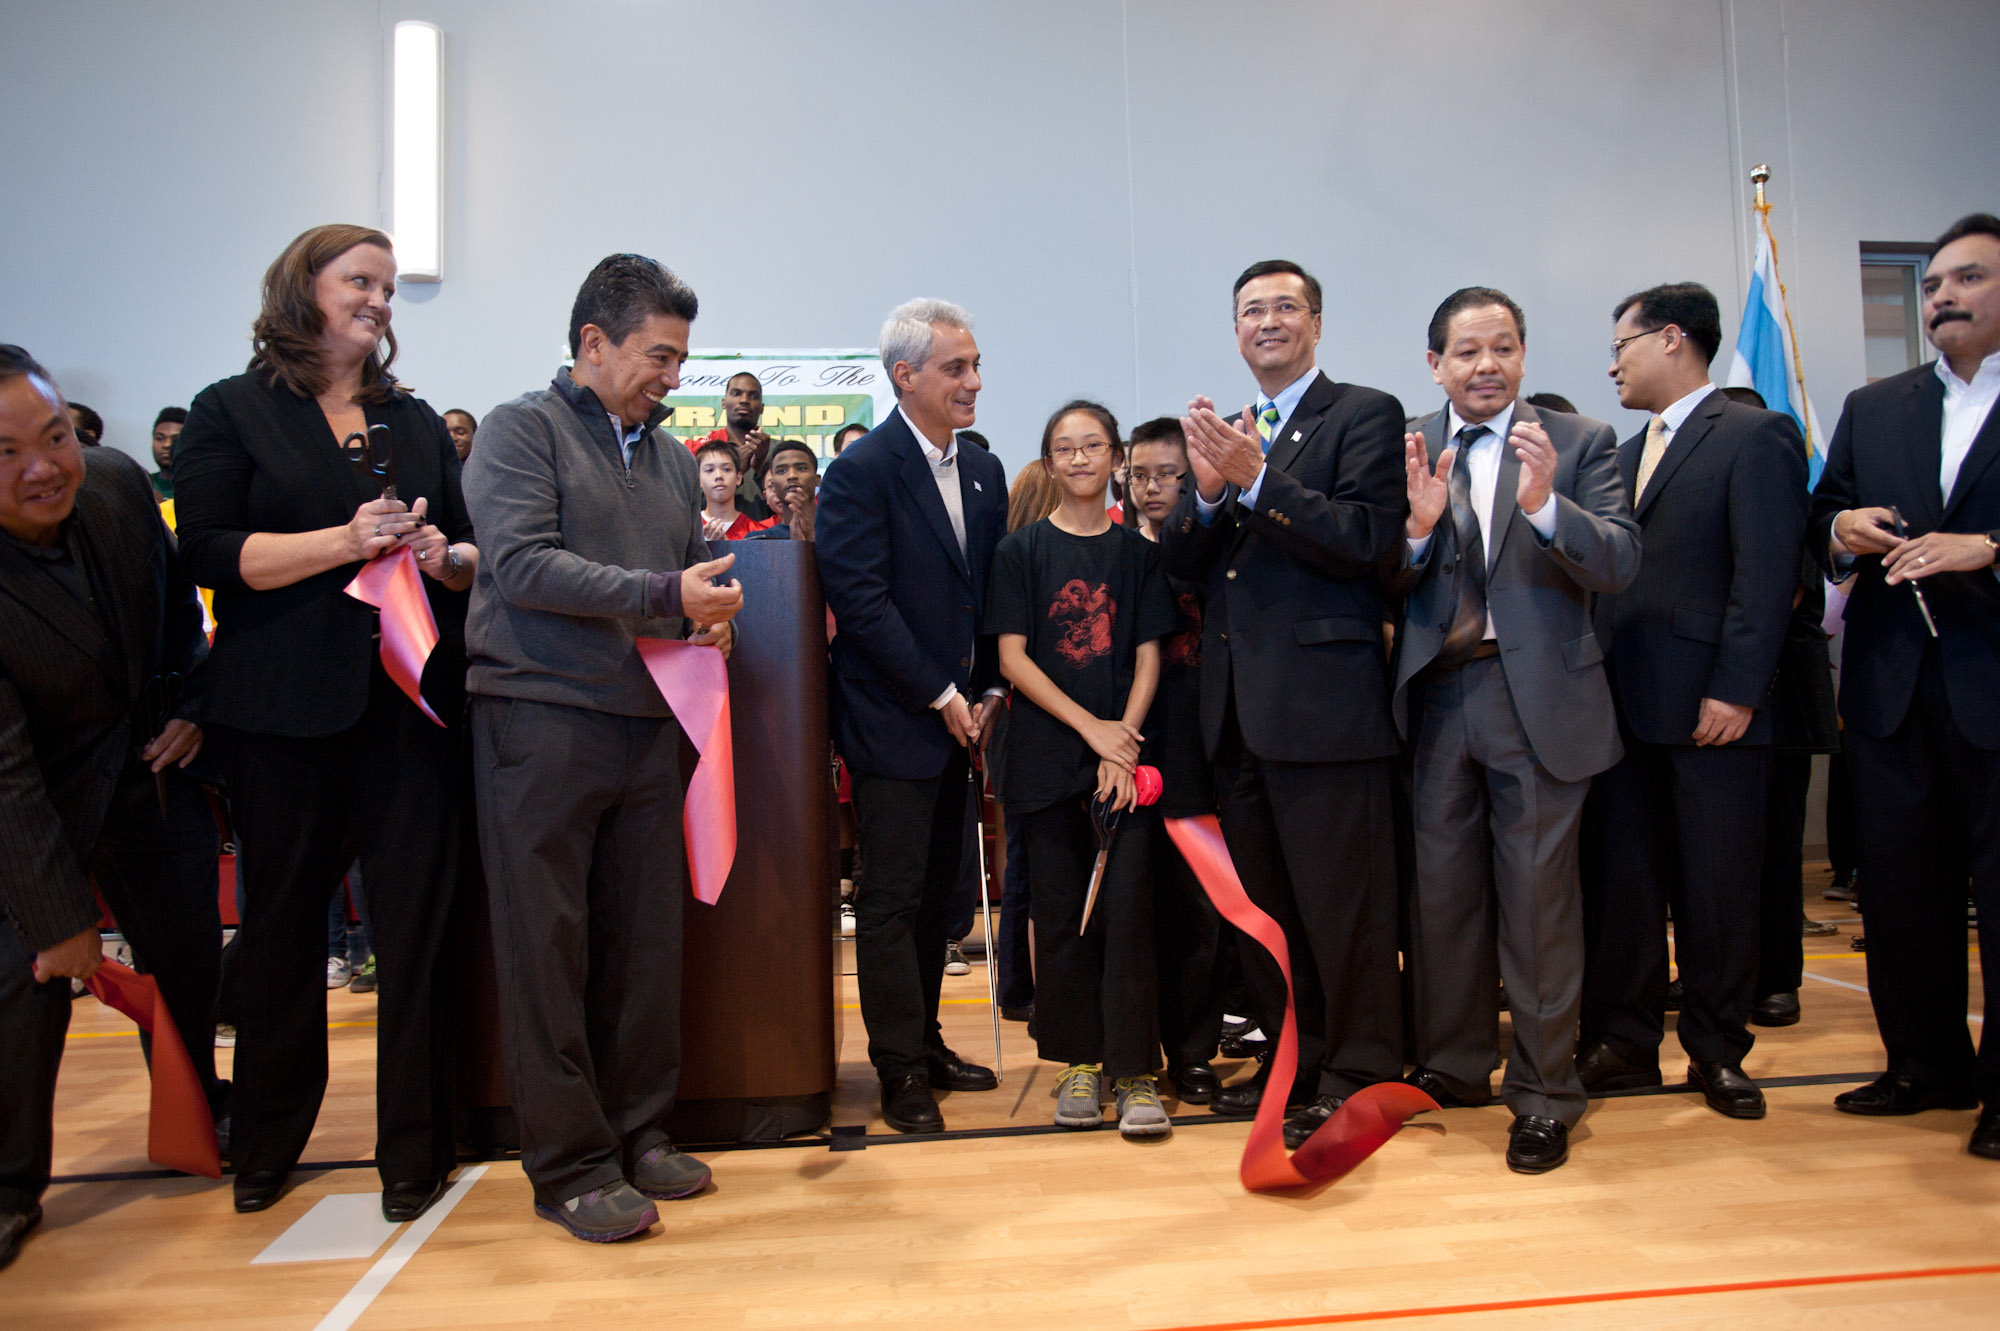 Mayor Rahm Emanuel, Alderman Danny Solis and members of the Chinatown and South Loop communities gathered today to celebrate the opening of the new fieldhouse at Ping Tom Memorial Park.